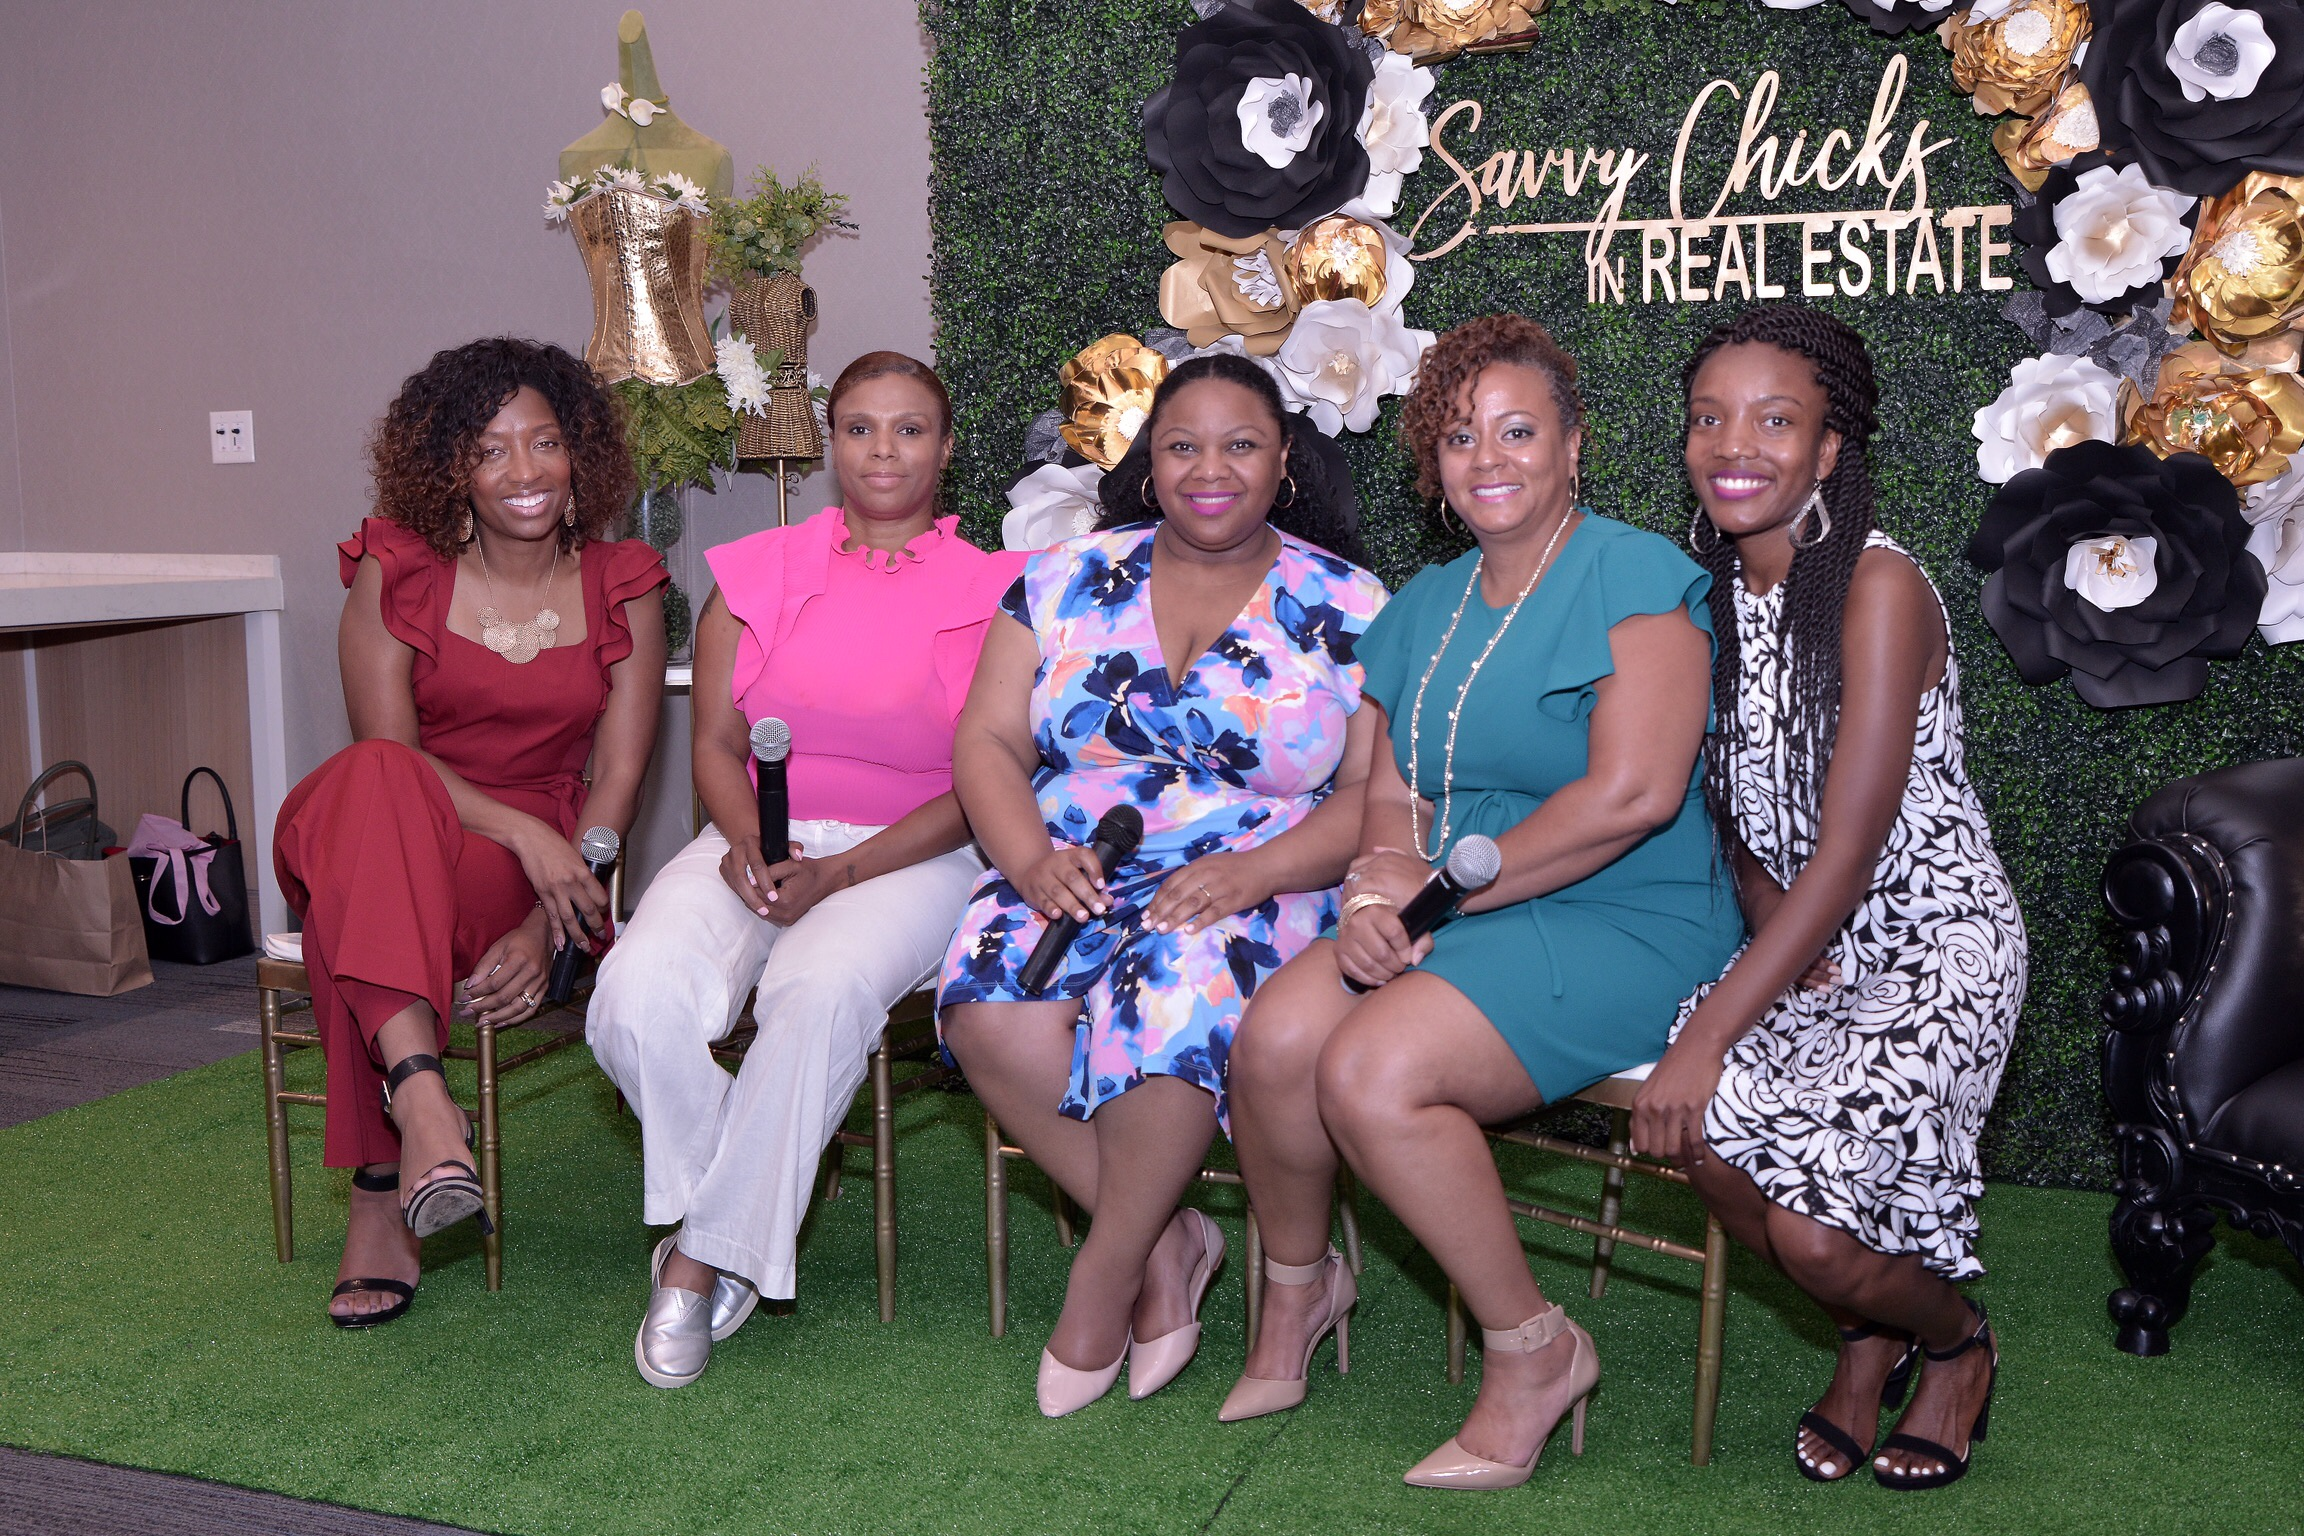 Savvy Chicks in Real Estate Investing